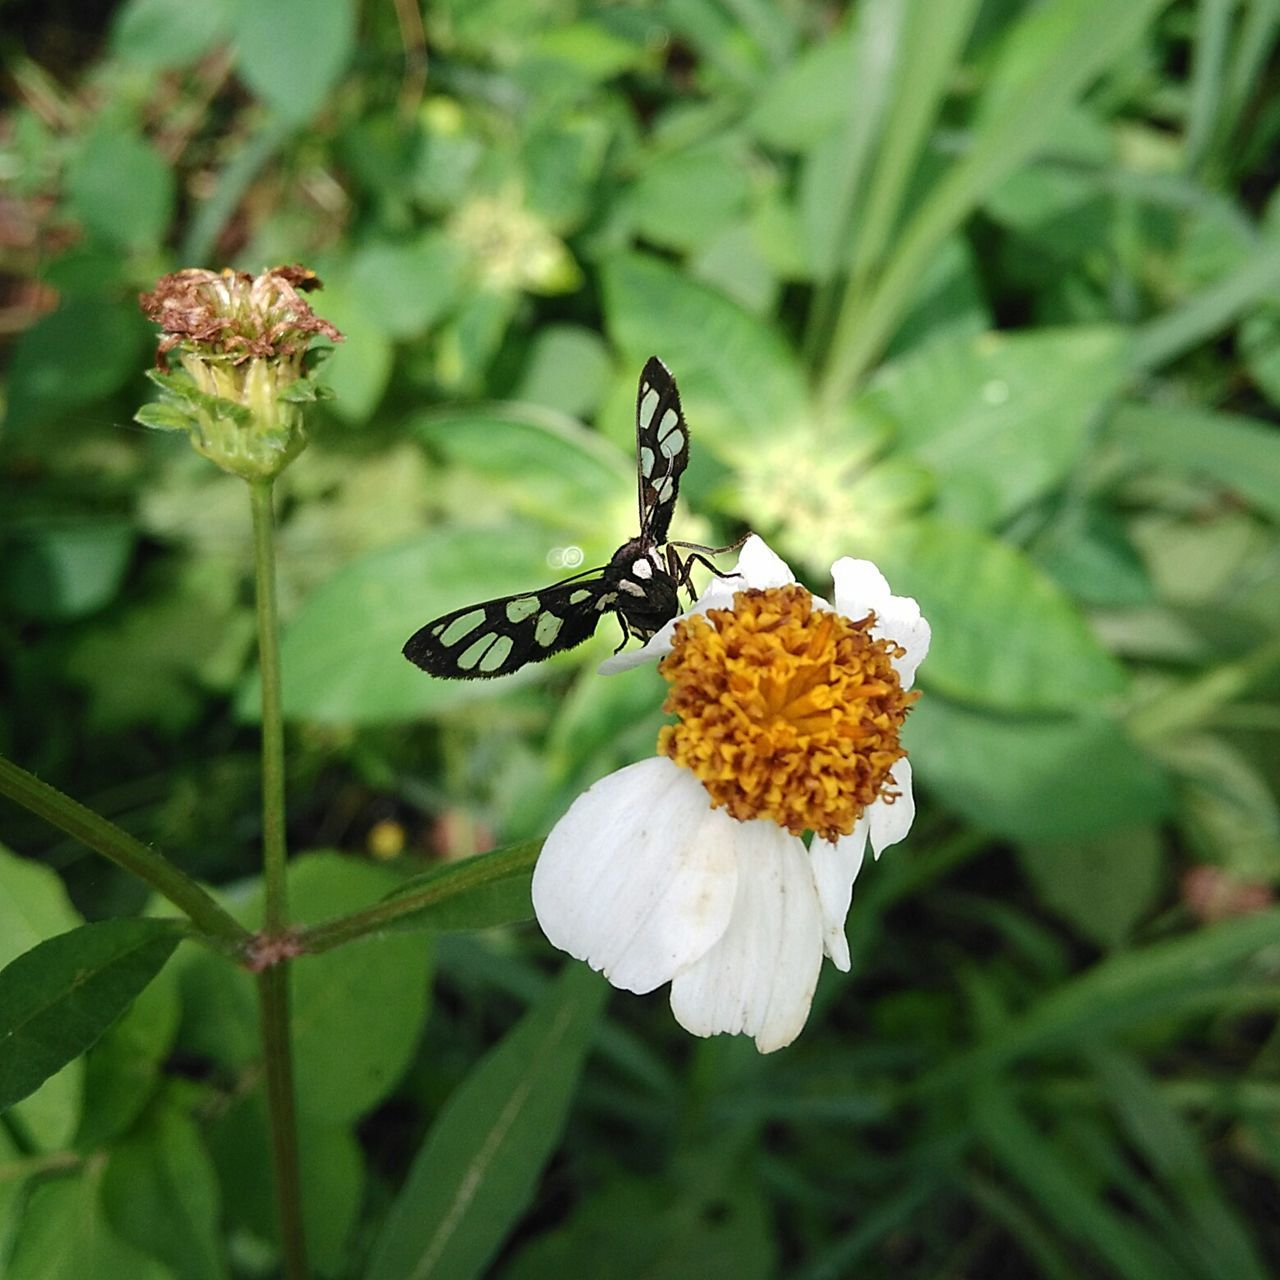 flower, fragility, insect, nature, butterfly - insect, growth, no people, day, focus on foreground, animals in the wild, outdoors, beauty in nature, plant, freshness, animal themes, flower head, close-up